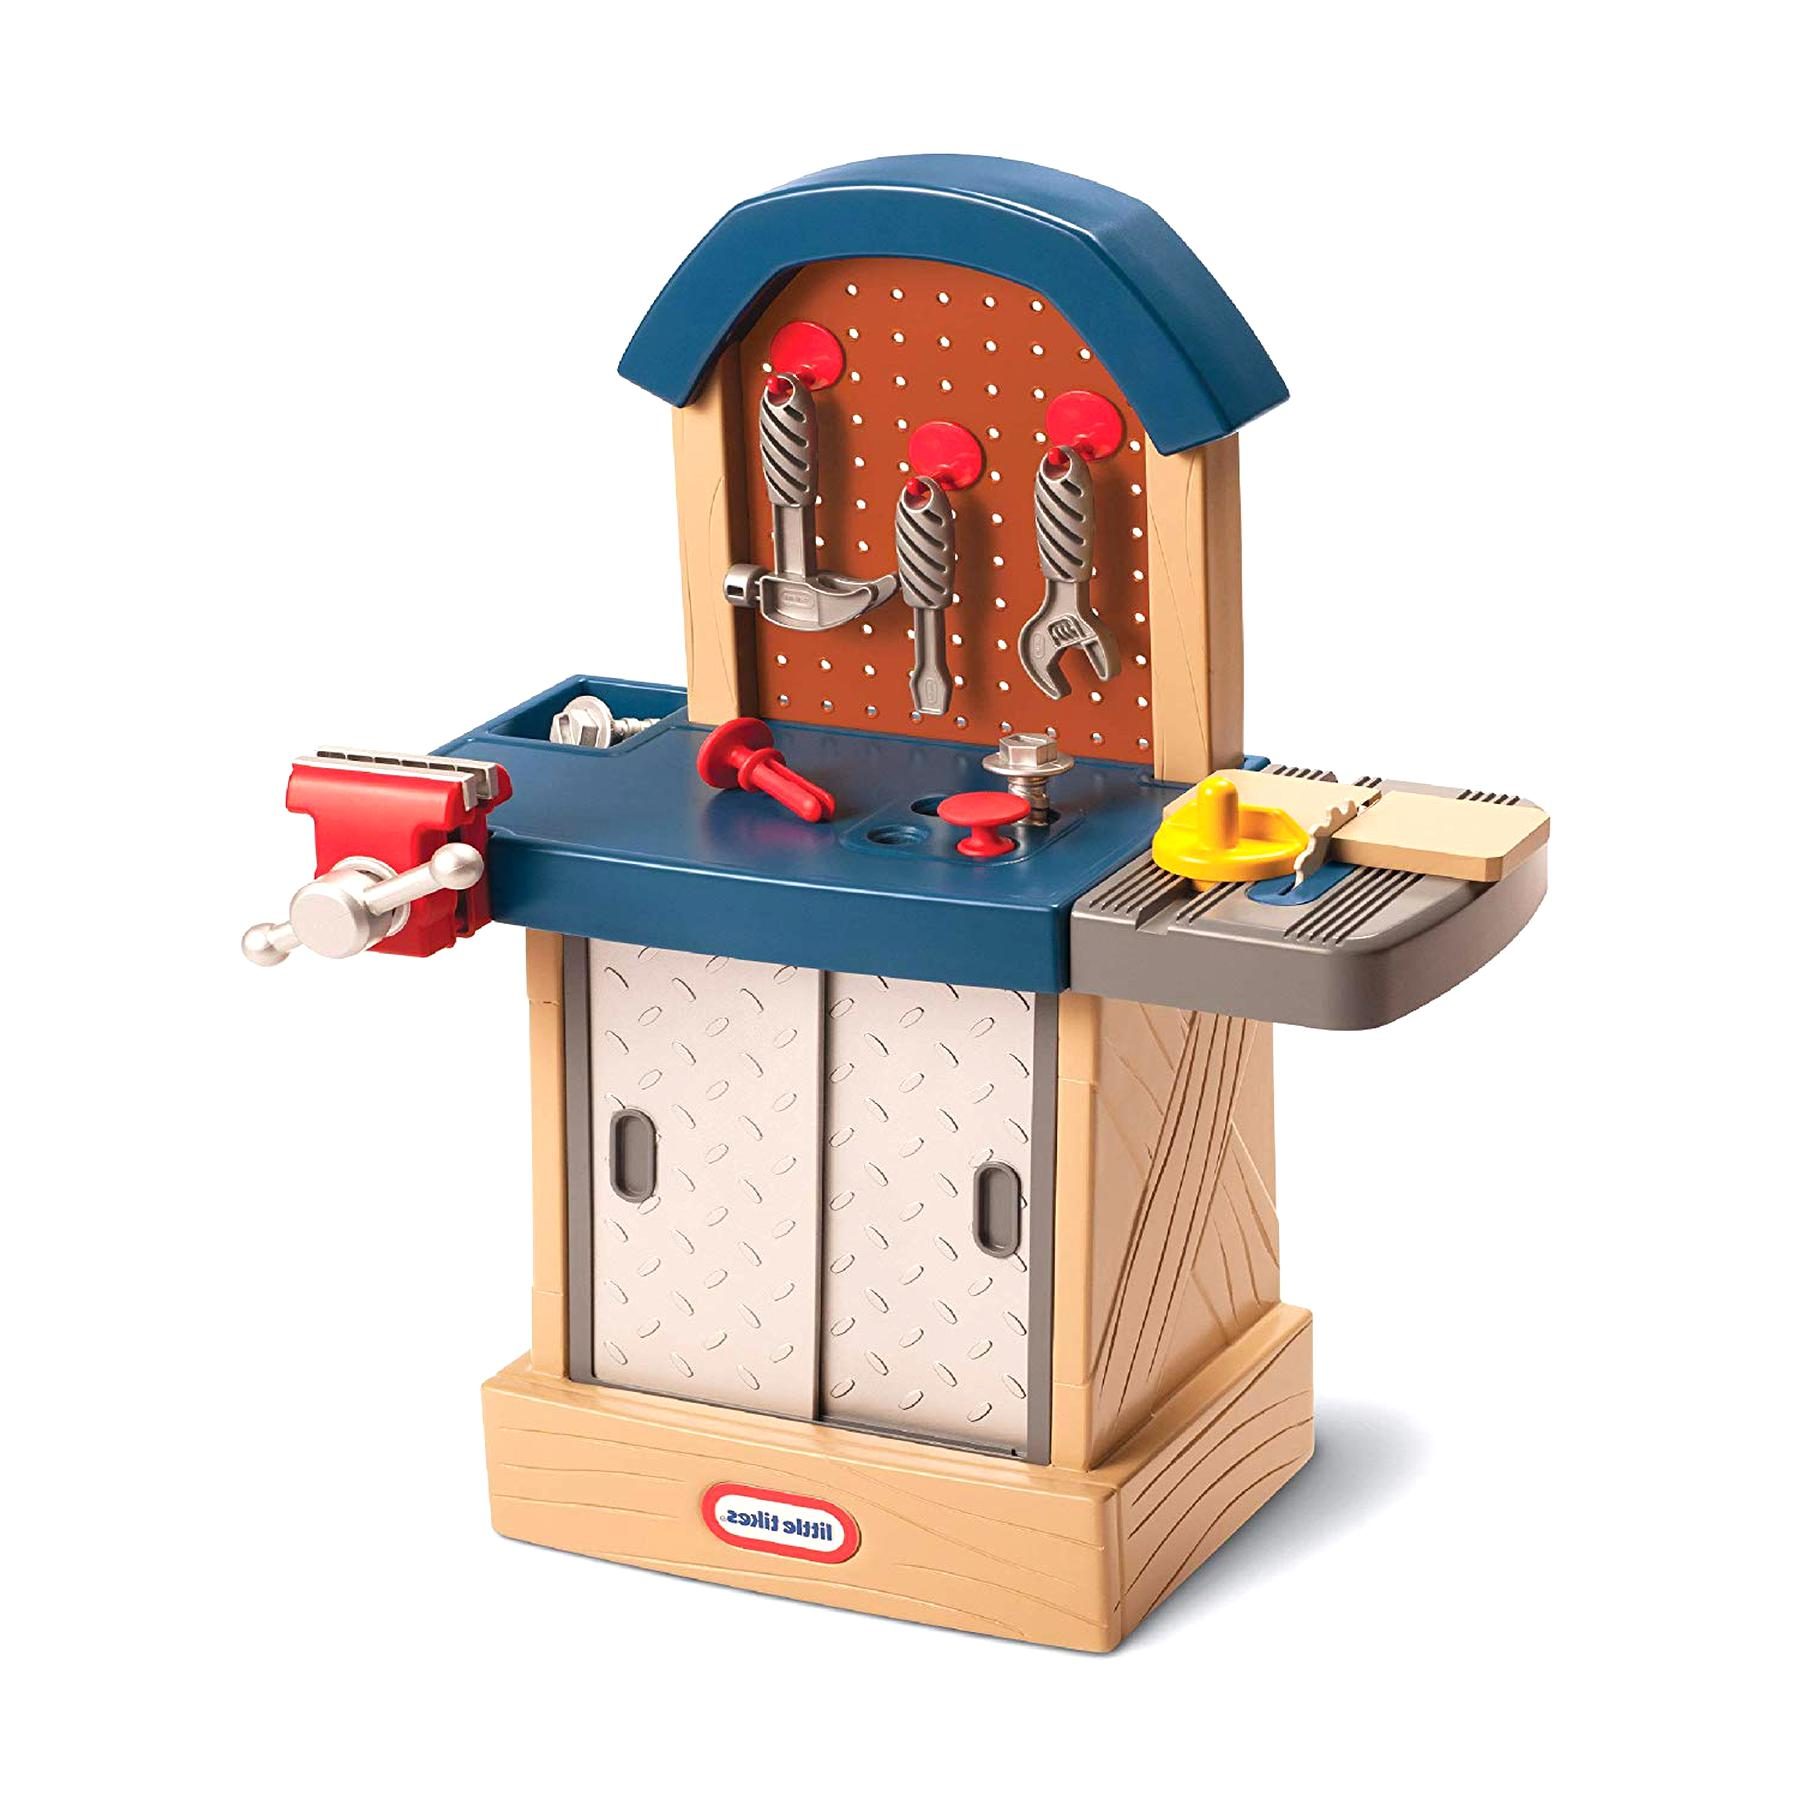 Groovy Little Tikes Workbench For Sale Only 3 Left At 75 Ocoug Best Dining Table And Chair Ideas Images Ocougorg